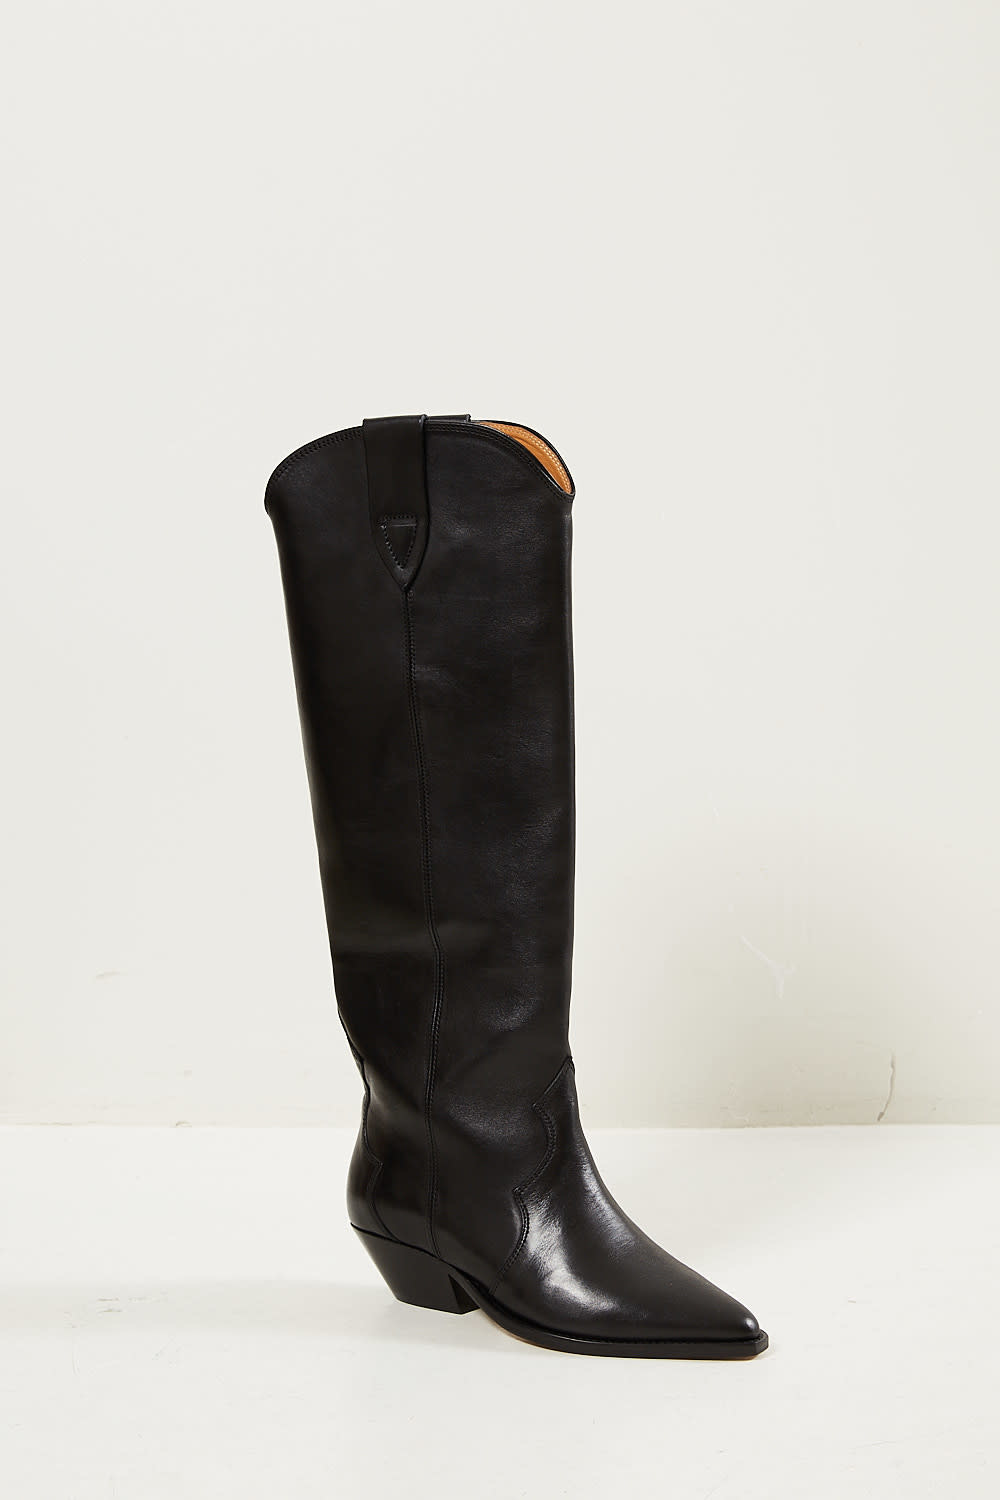 Isabel Marant - Denvee leather iconic boots